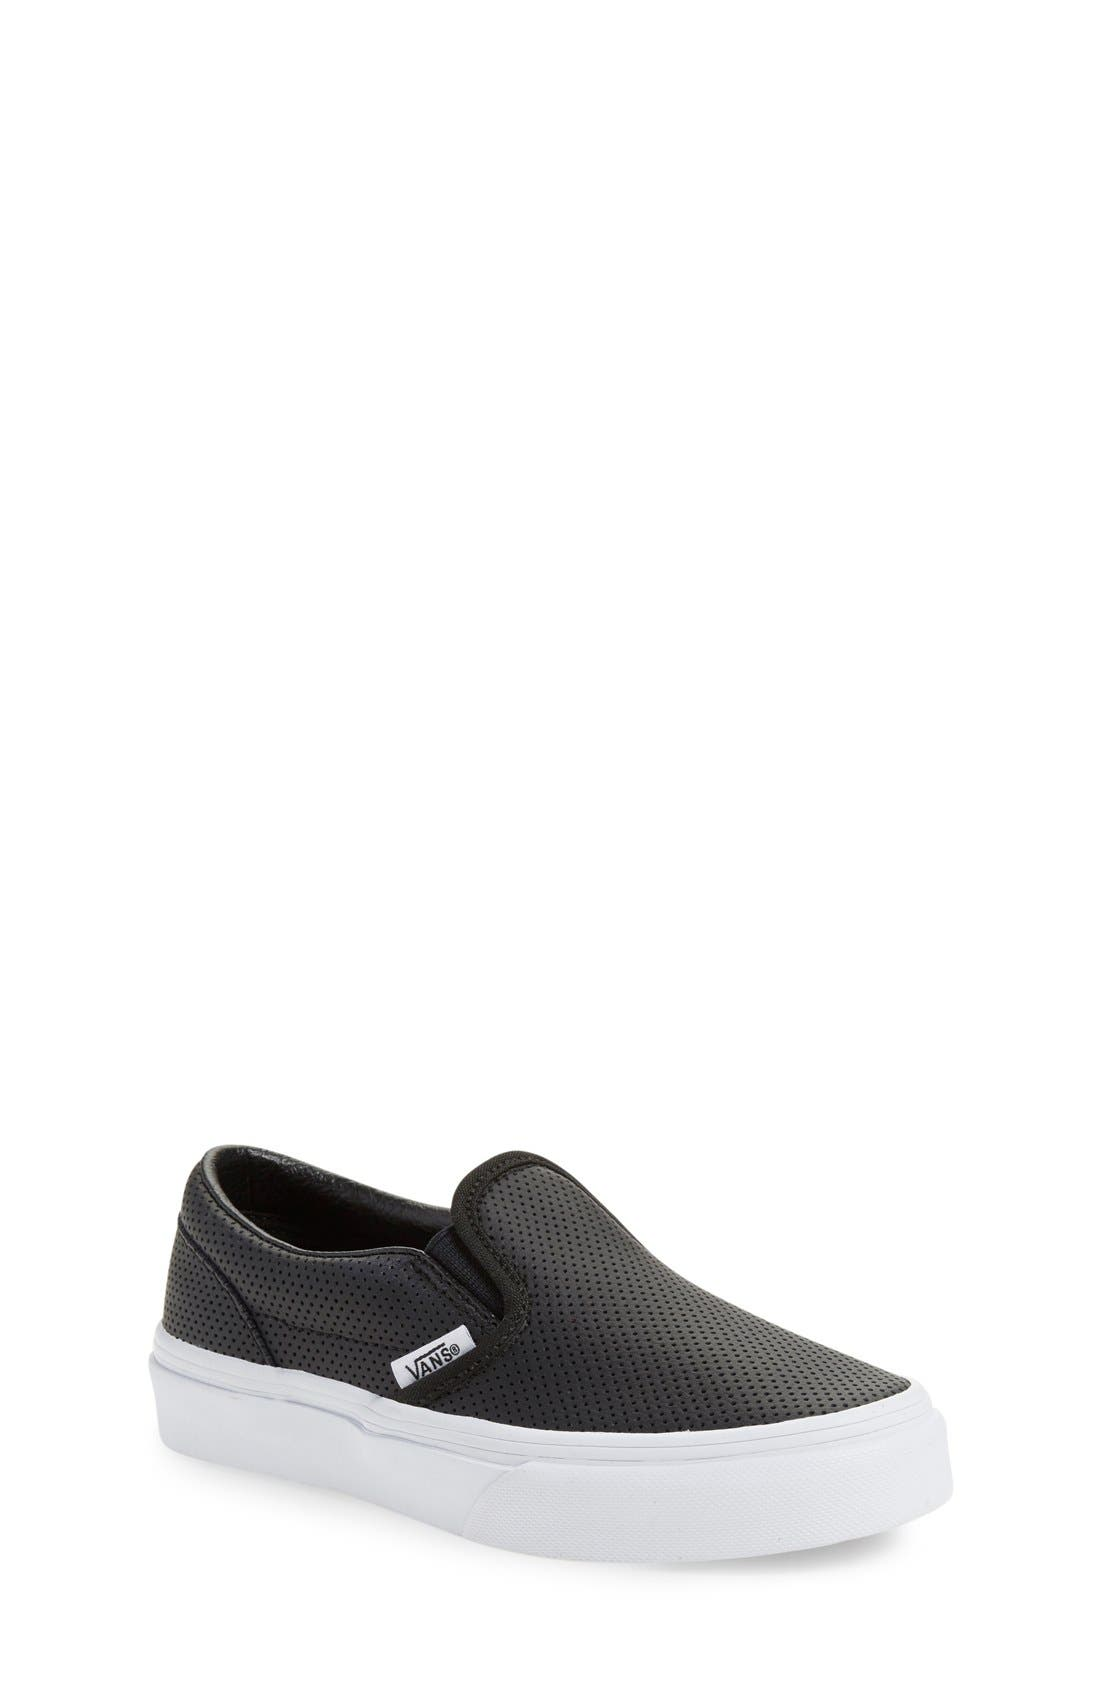 Vans 'Classic' Slip-On Sneaker (Baby, Walker, Toddler, Little Kid & Big Kid)